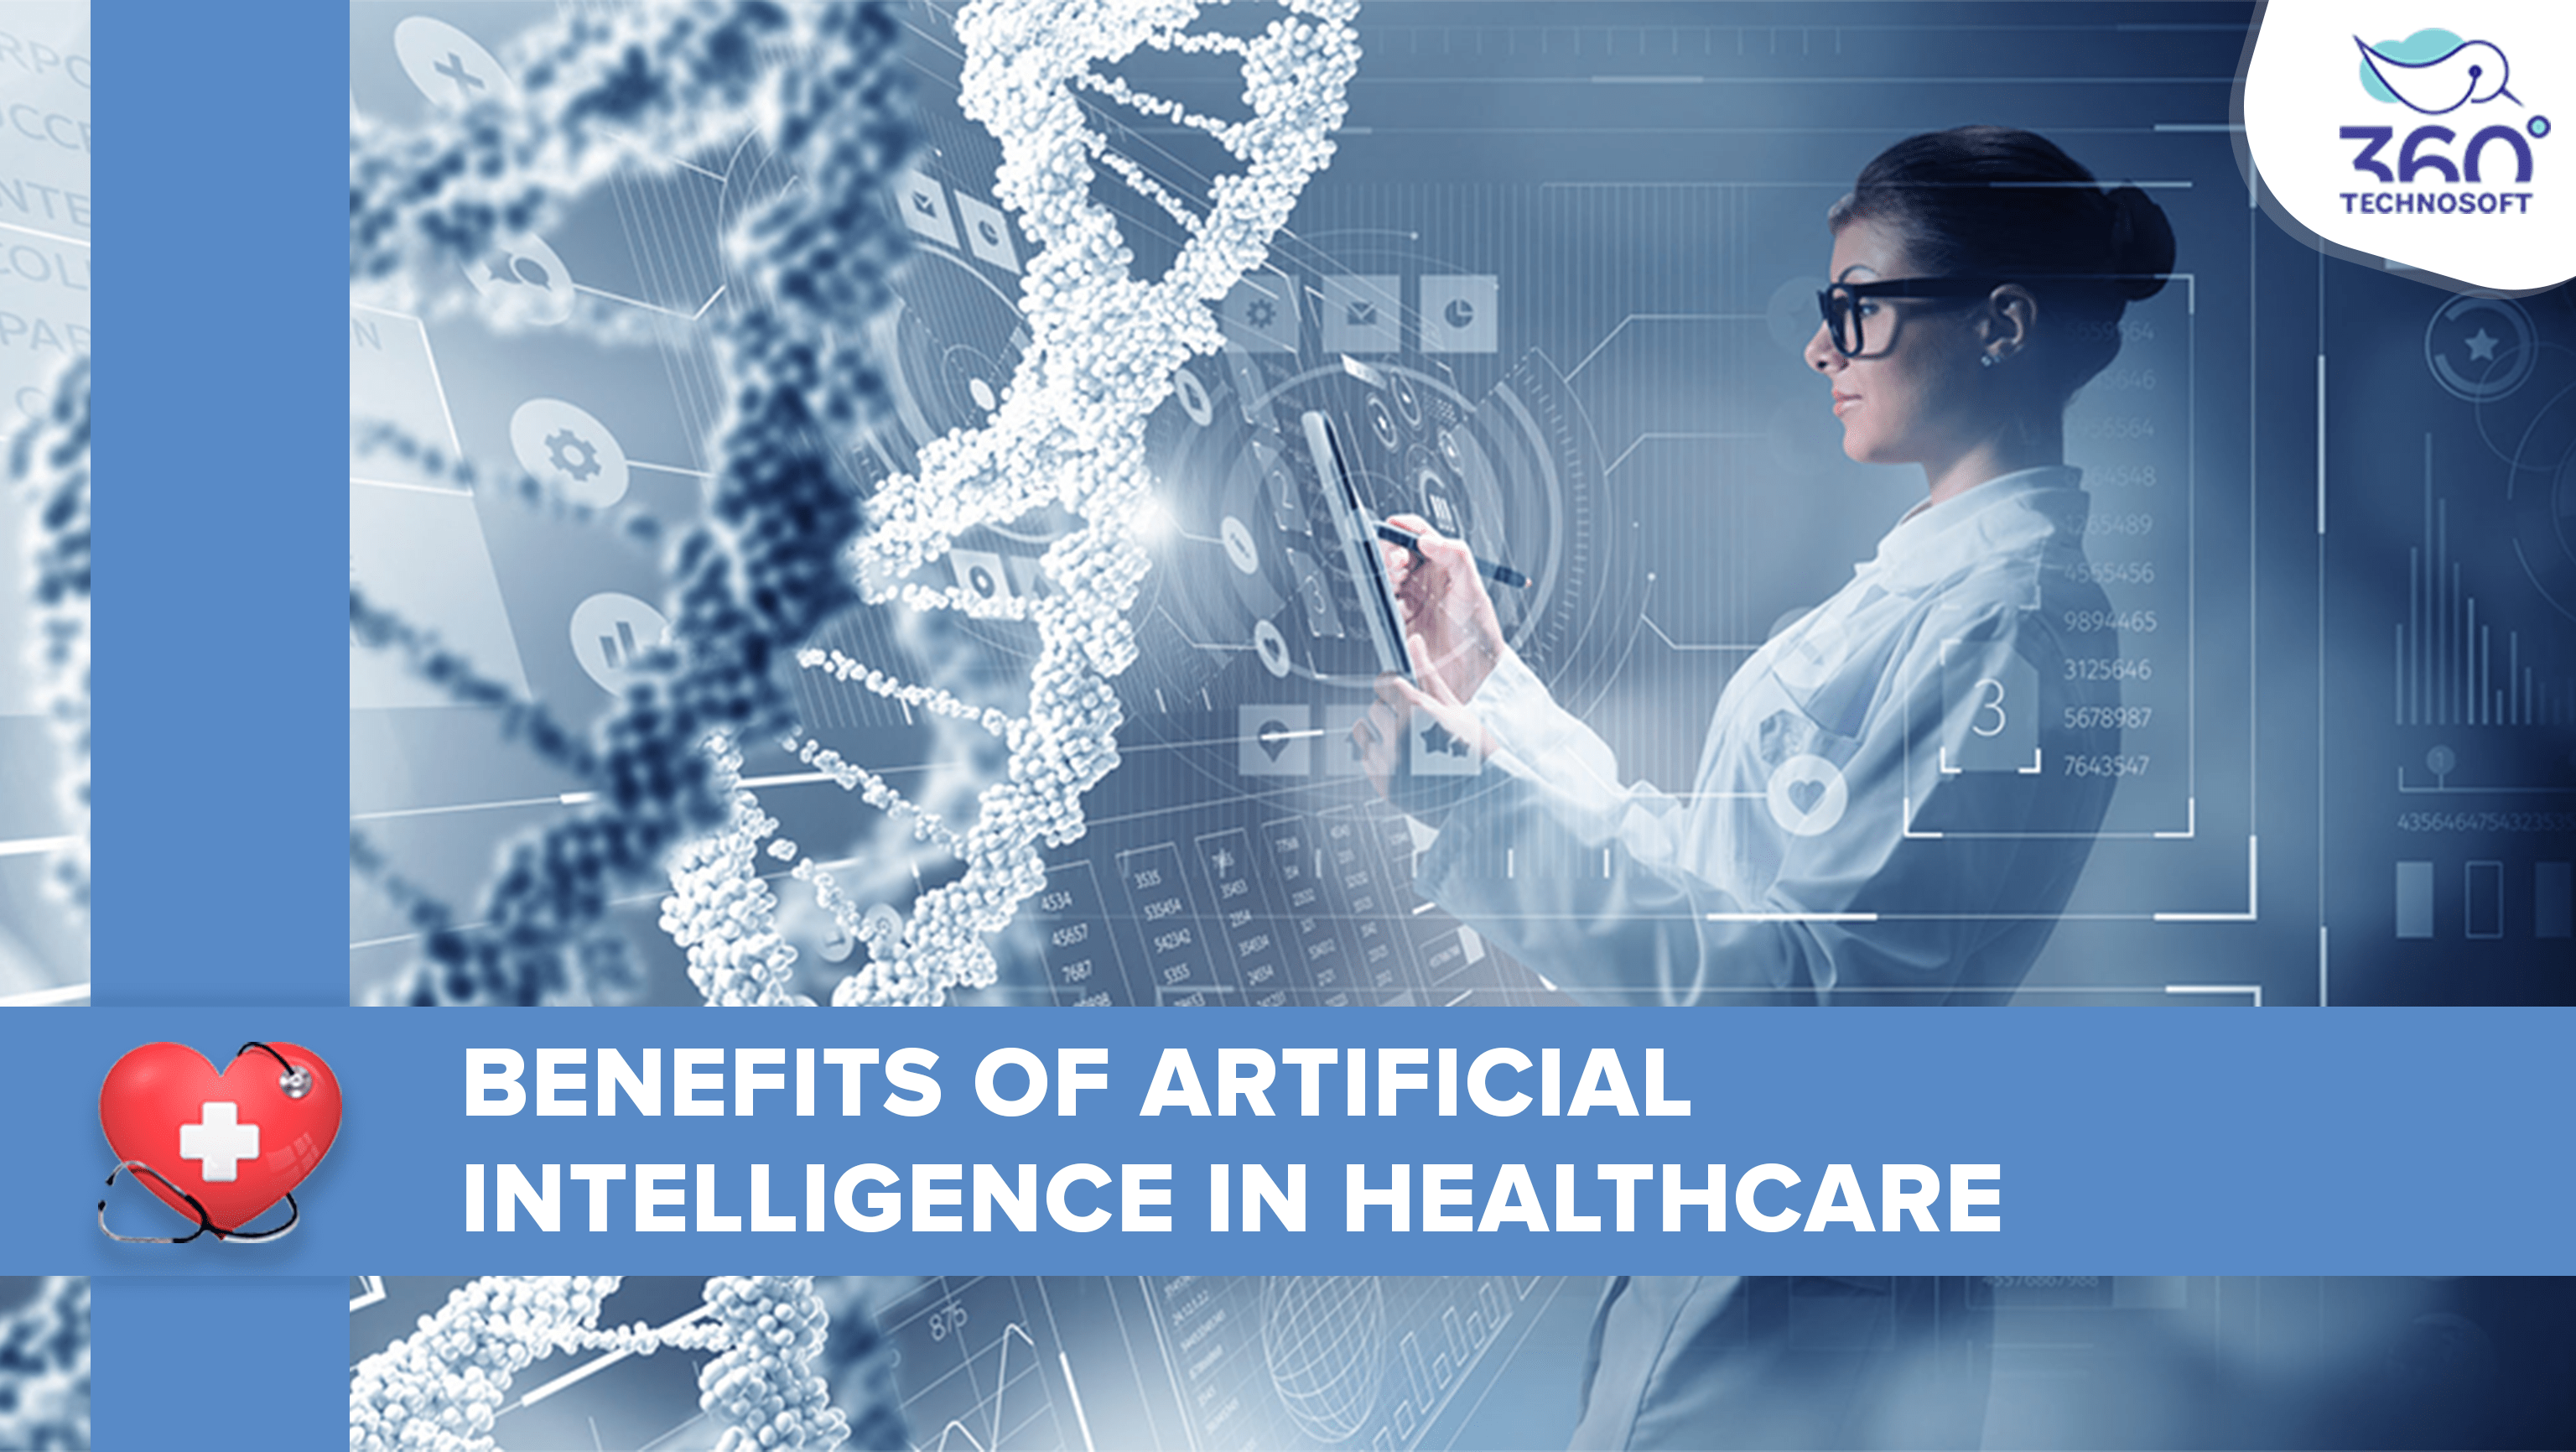 MHow AI is Beneficial in the Healthcare Industry?